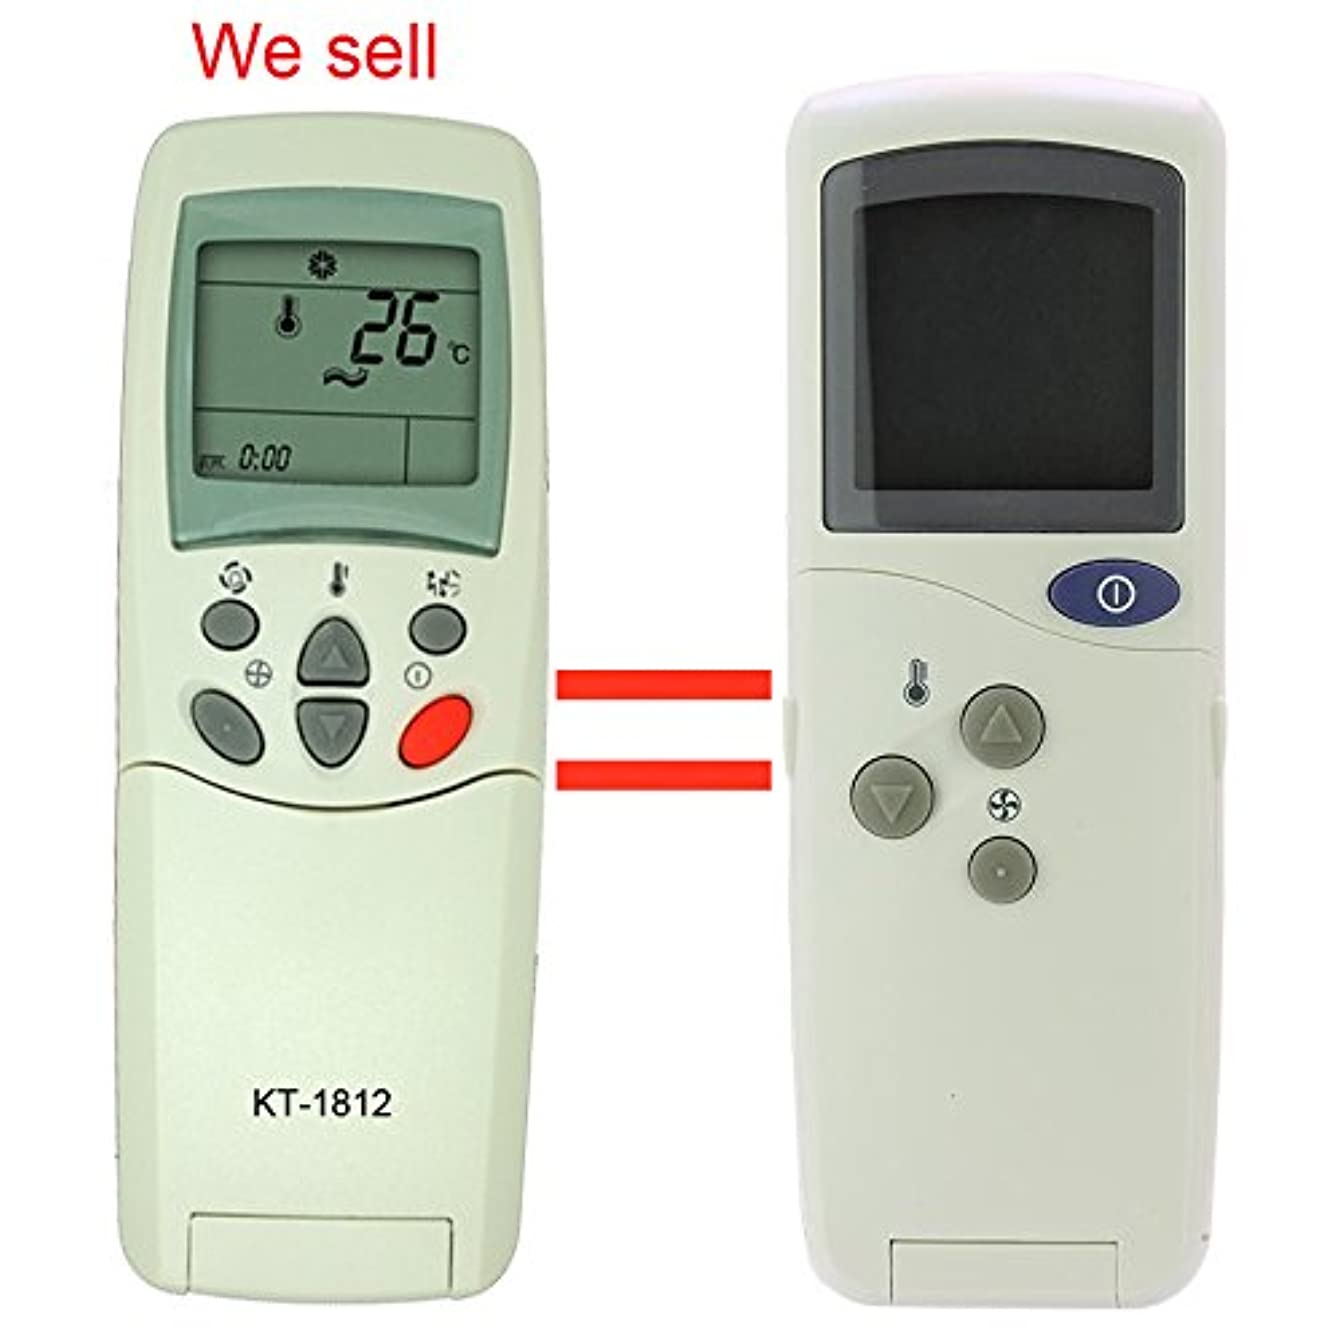 KT-1812 Replacement for LG Air Conditioner Remote Control Model Number 6711AR2905B Works for HMH012KD HMH018KD HMH024KD HMH030KD